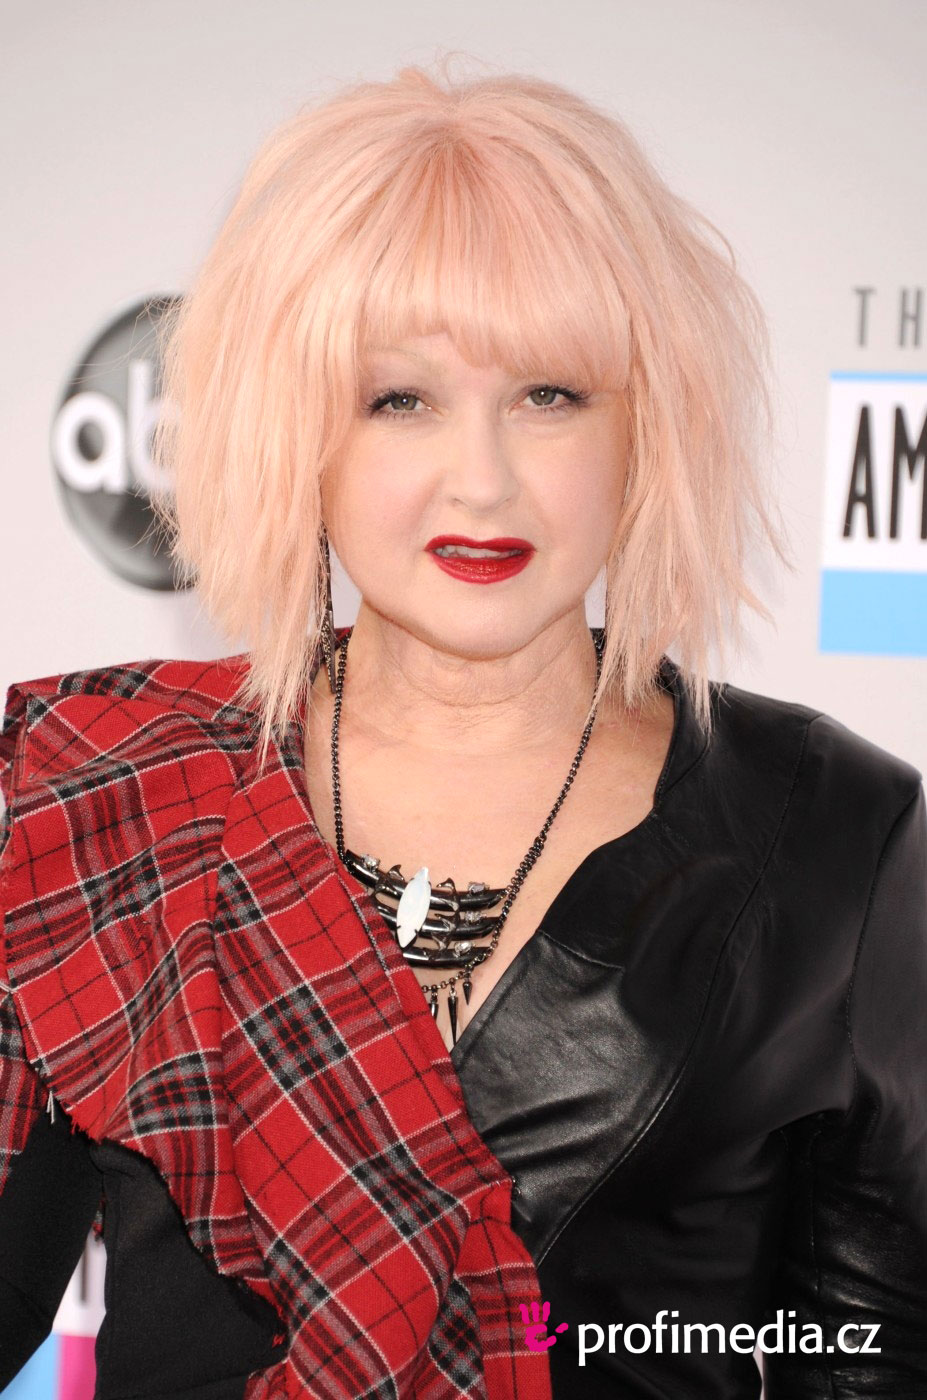 Cyndi Lauper Hairstyle Easyhairstyler